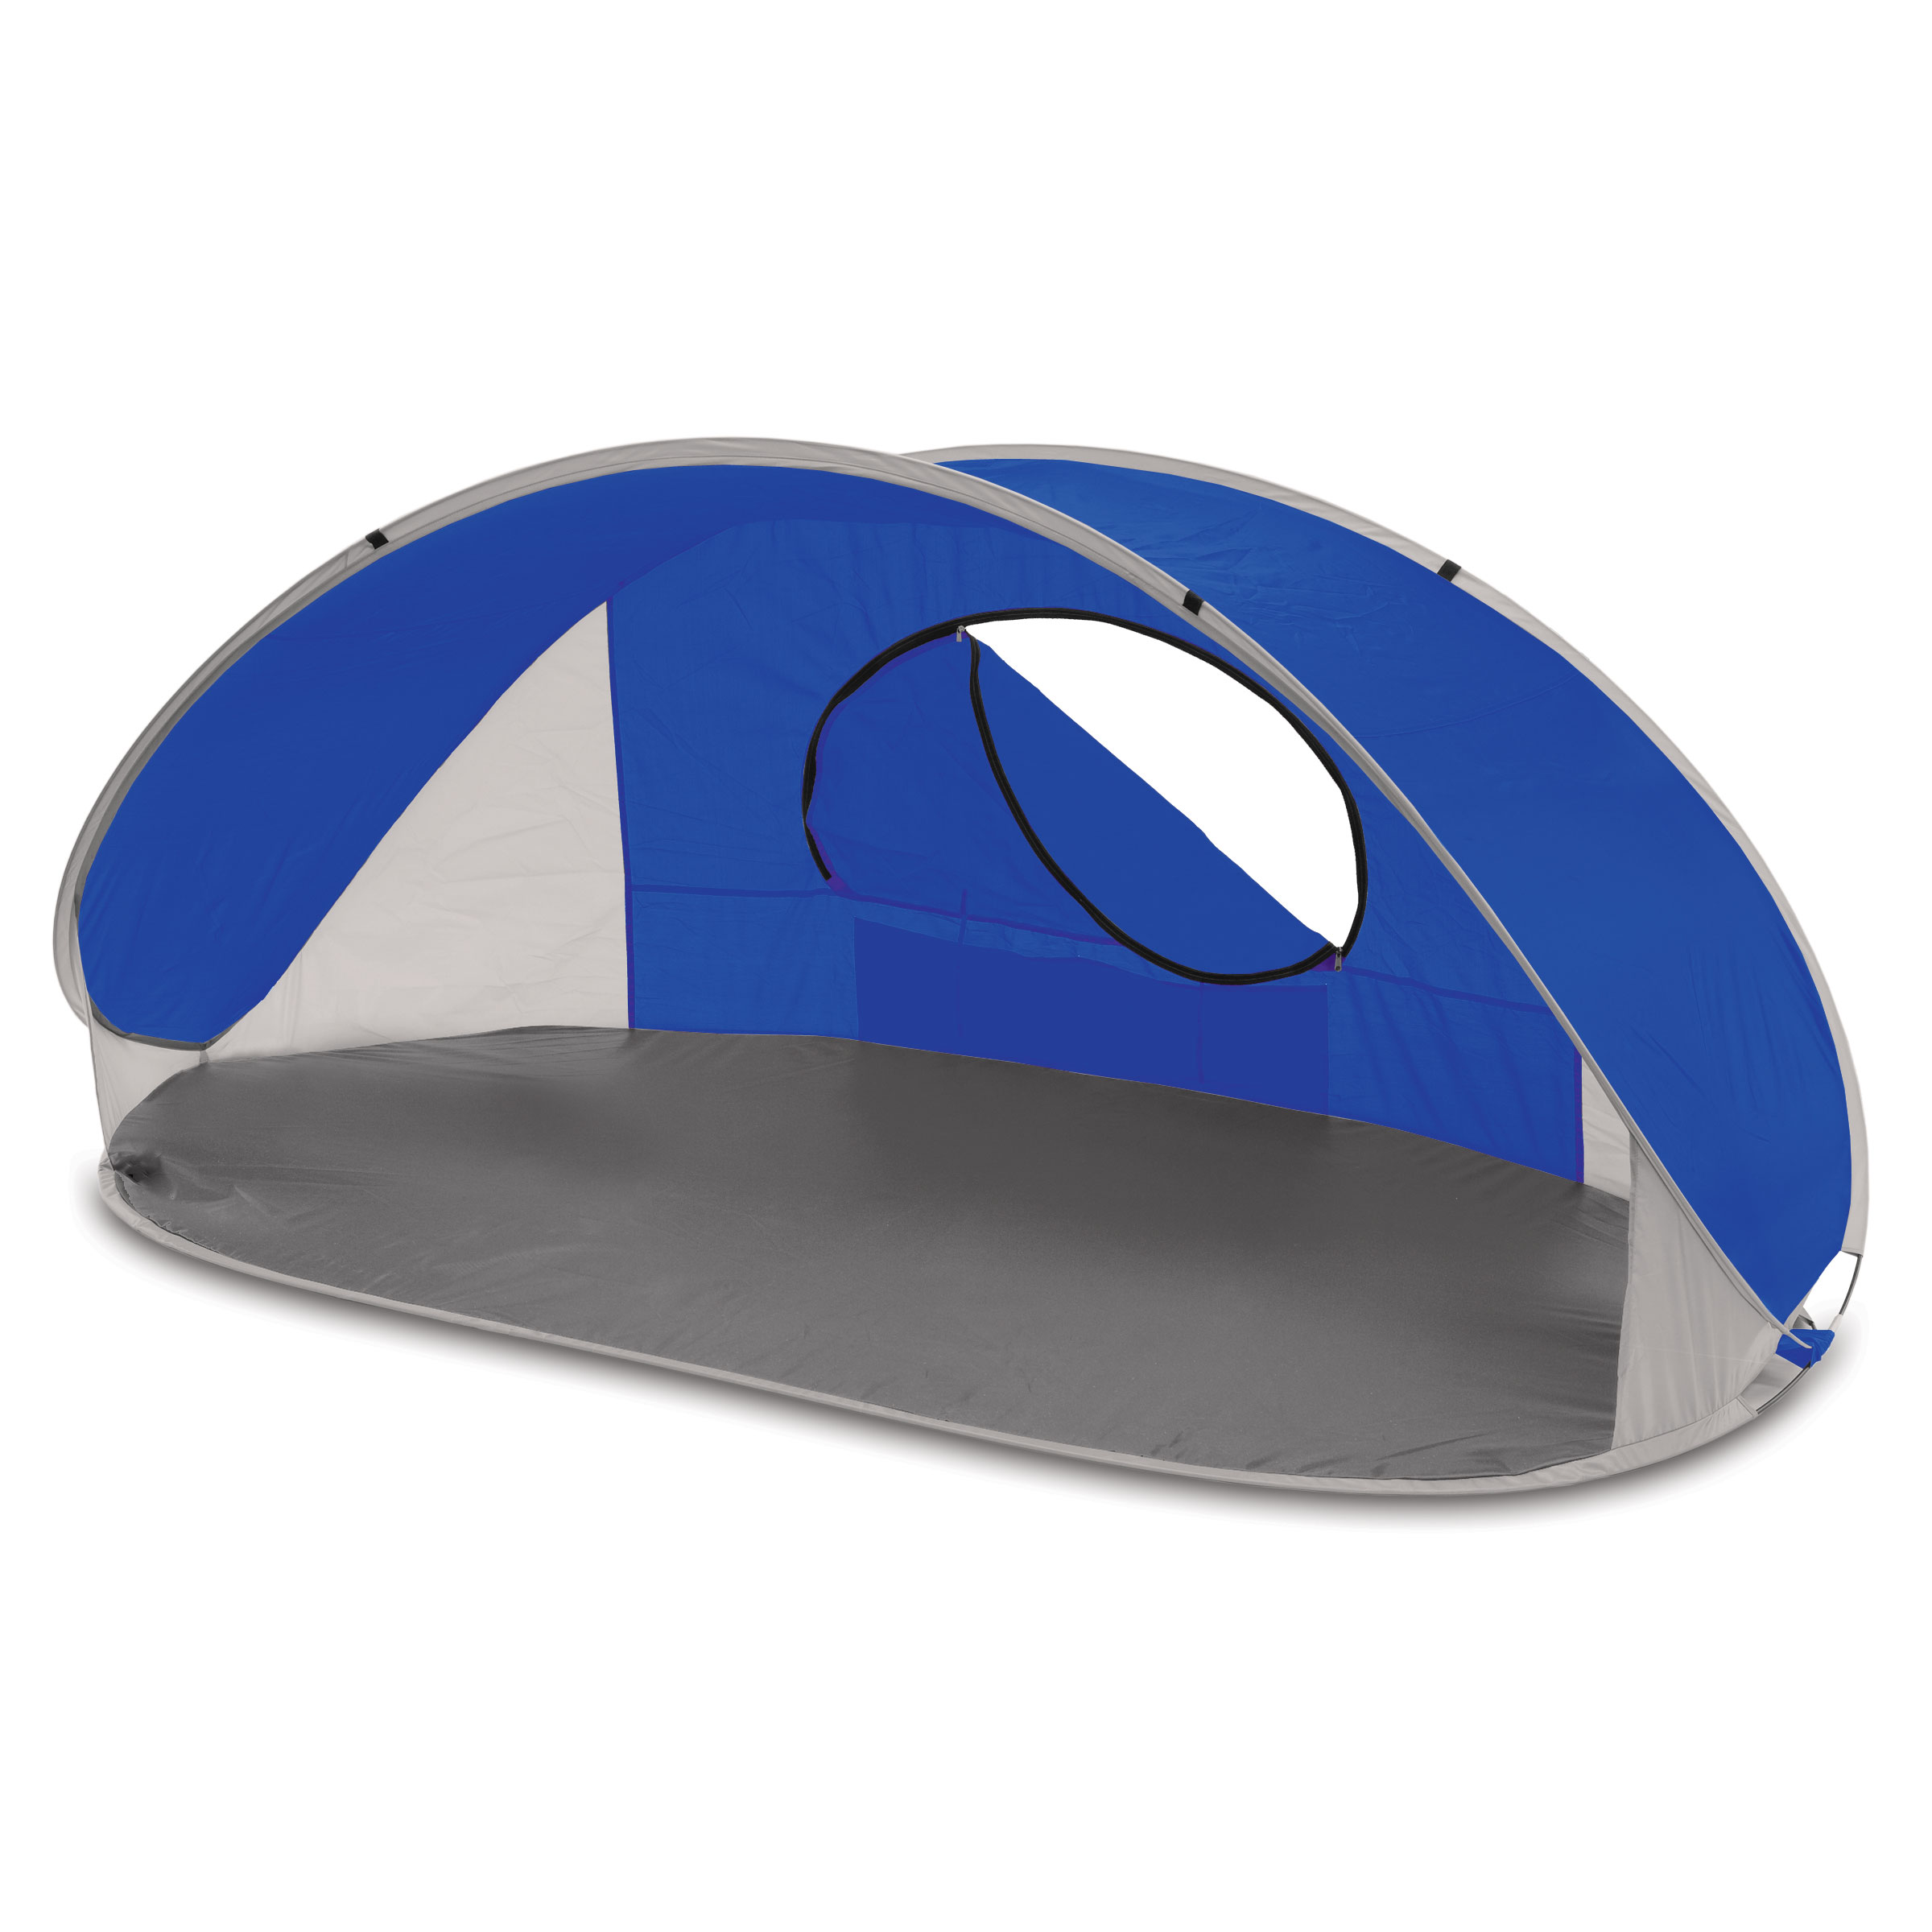 Manta Sun Shelter Blue/grey